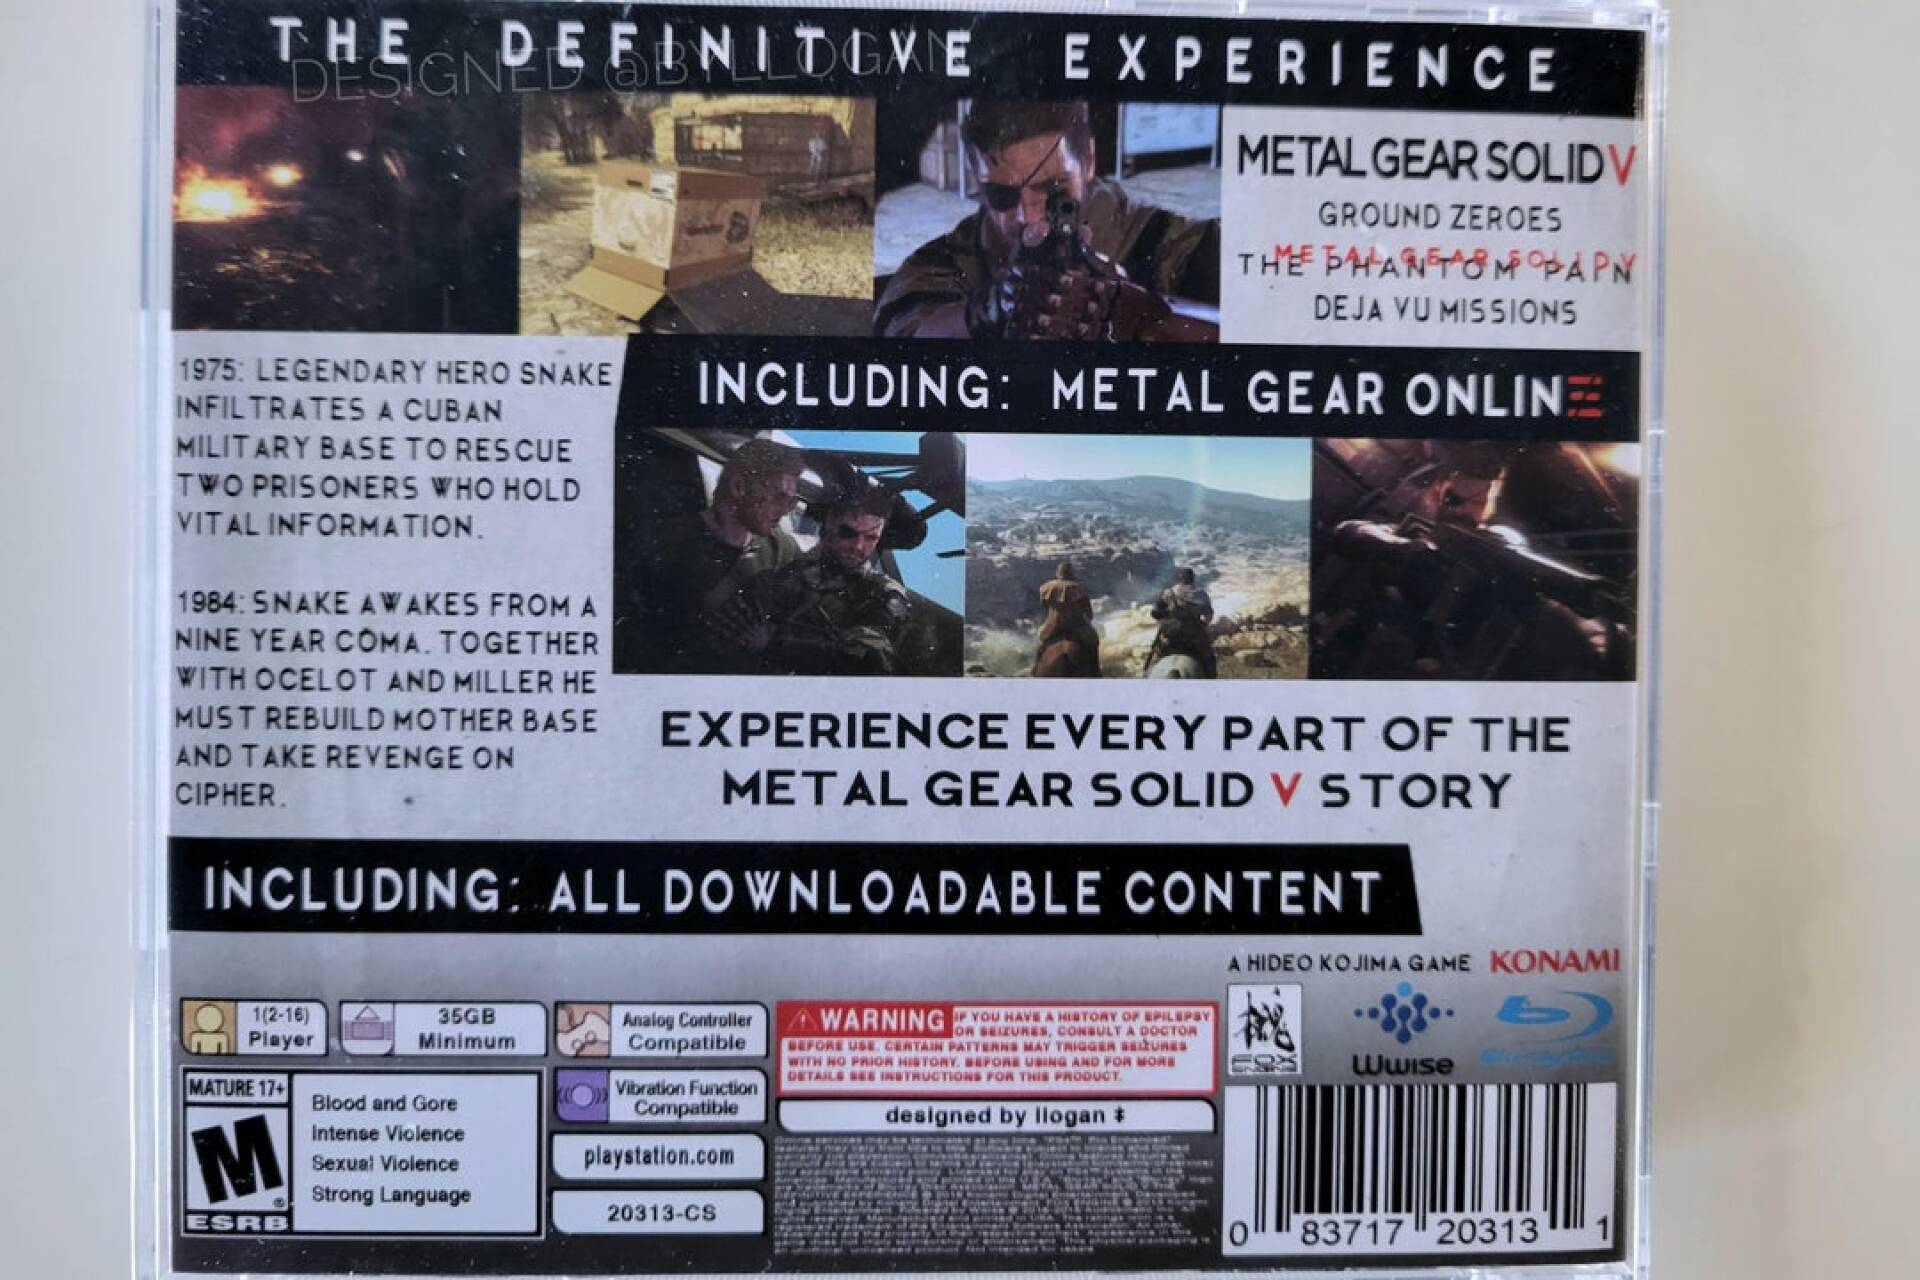 Metal Gear Solid V, but for PSOne (and the result is exciting)